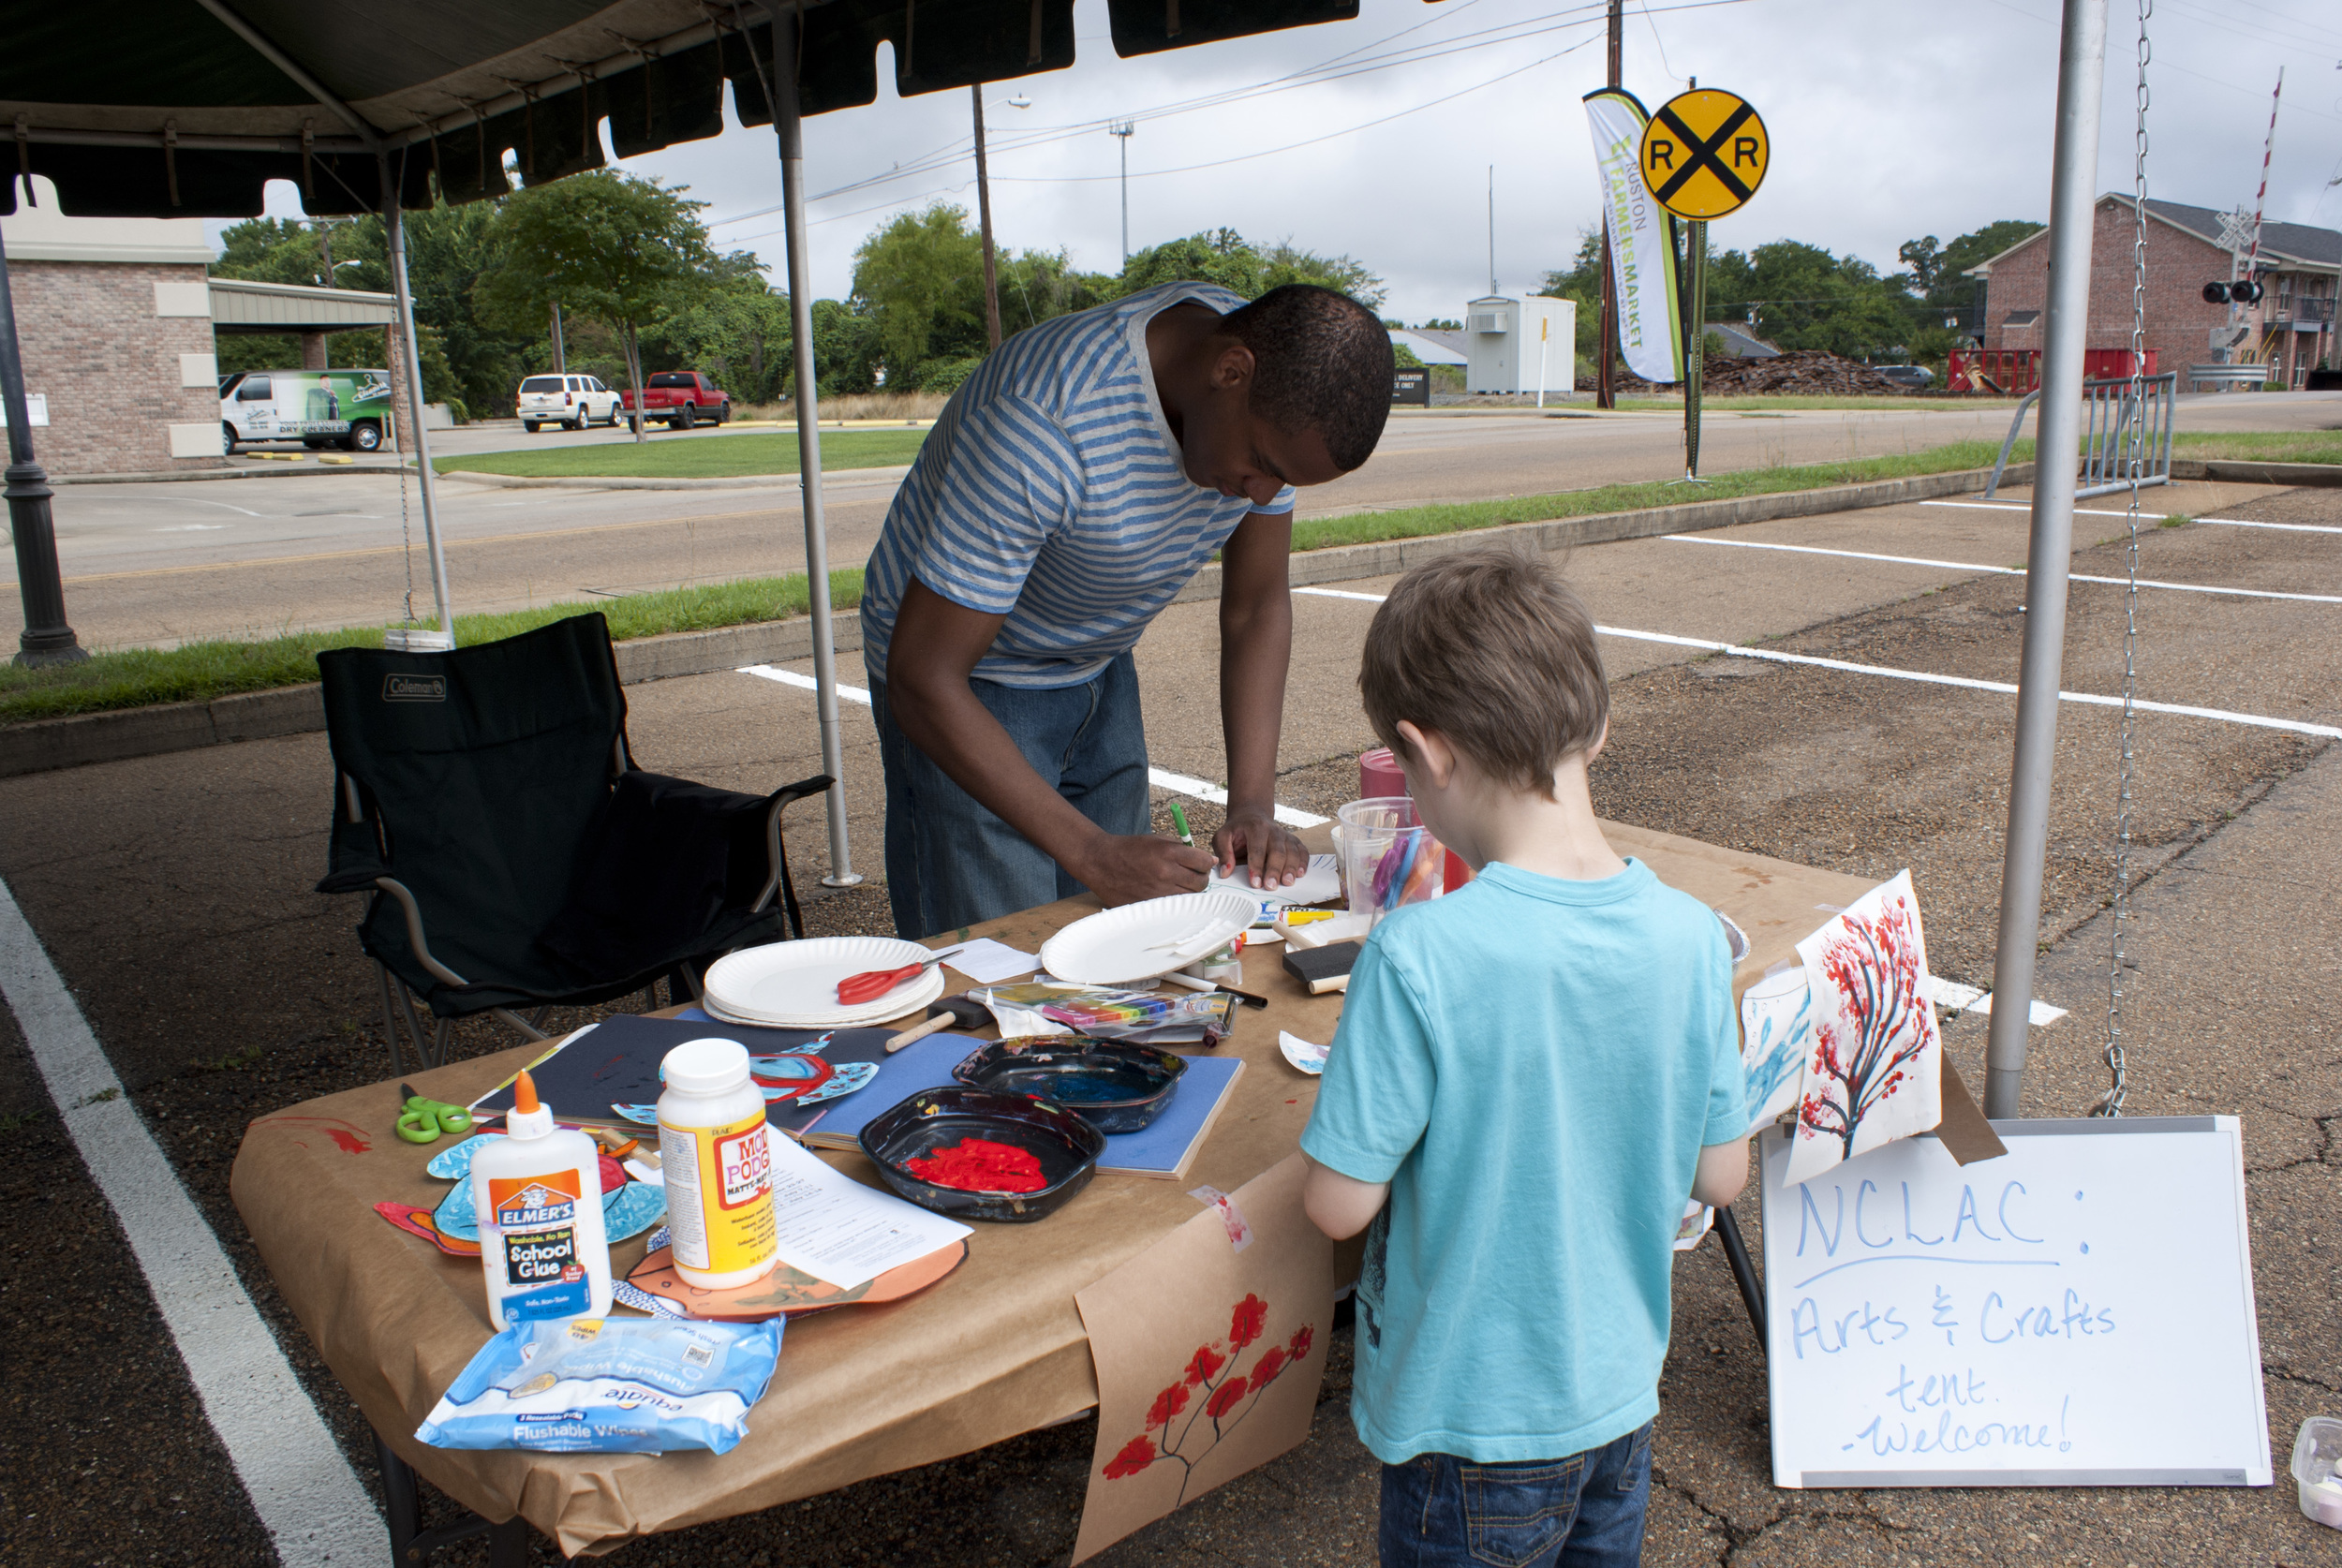 """making something with NCLAC"" at our Ruston Farmers Market booth"